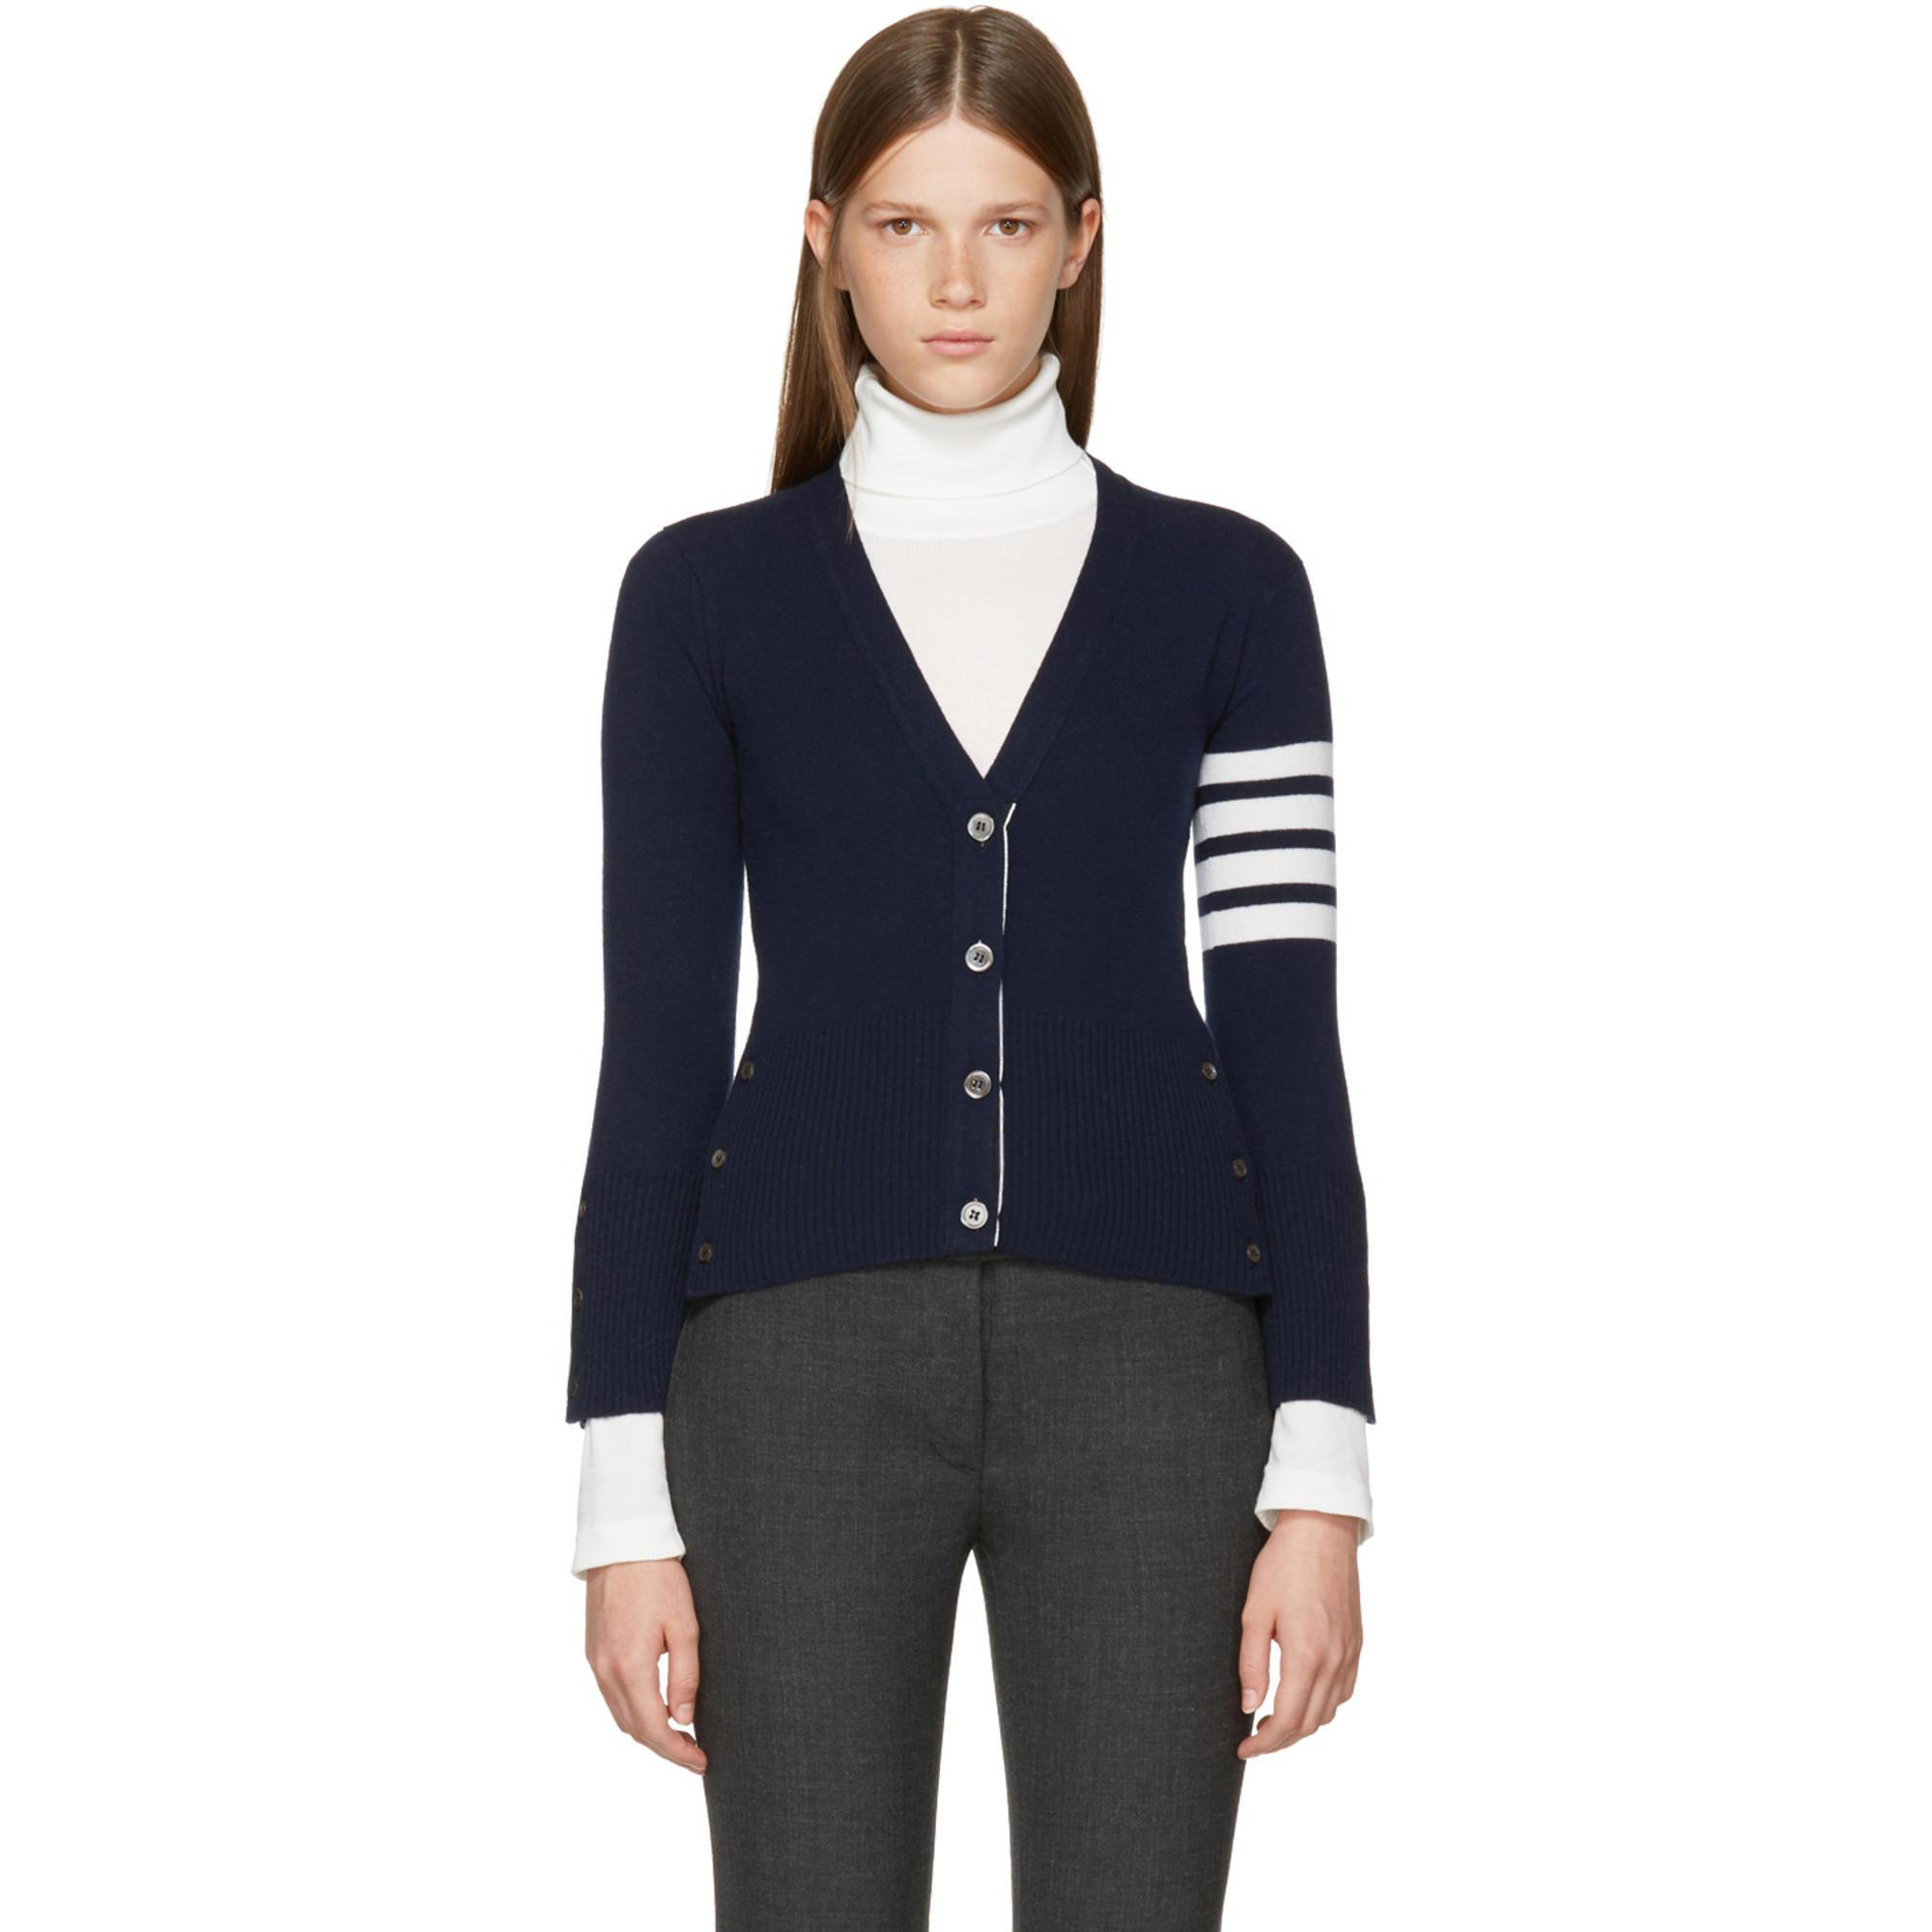 Navy Classic Short V-Neck Cardigan Thom Browne Sast Cheap Online Outlet Shop For Buy Cheap Enjoy Particular Outlet Cheap 7Gynoqi4